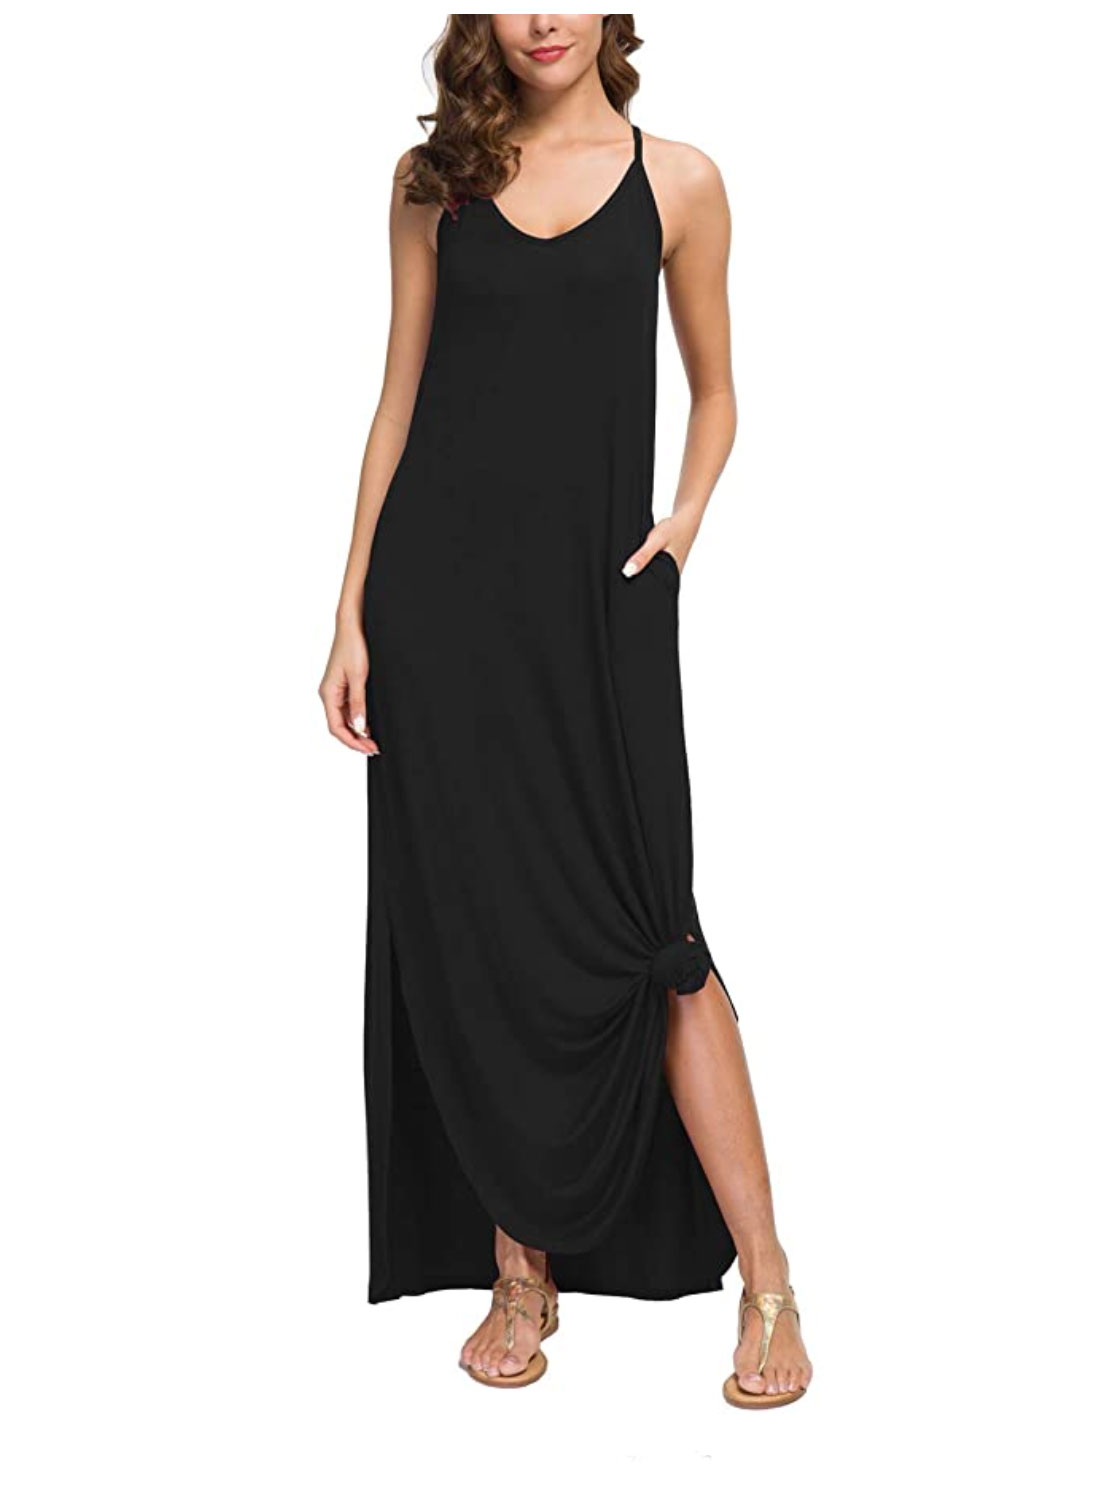 Buy It: $29.99; amazon.com                                       We love a maxi dress, but we especially love ones with pockets. This flowy style comes in 24 colors and patterns. Tie the front hem up slightly—all the kids are doing it.